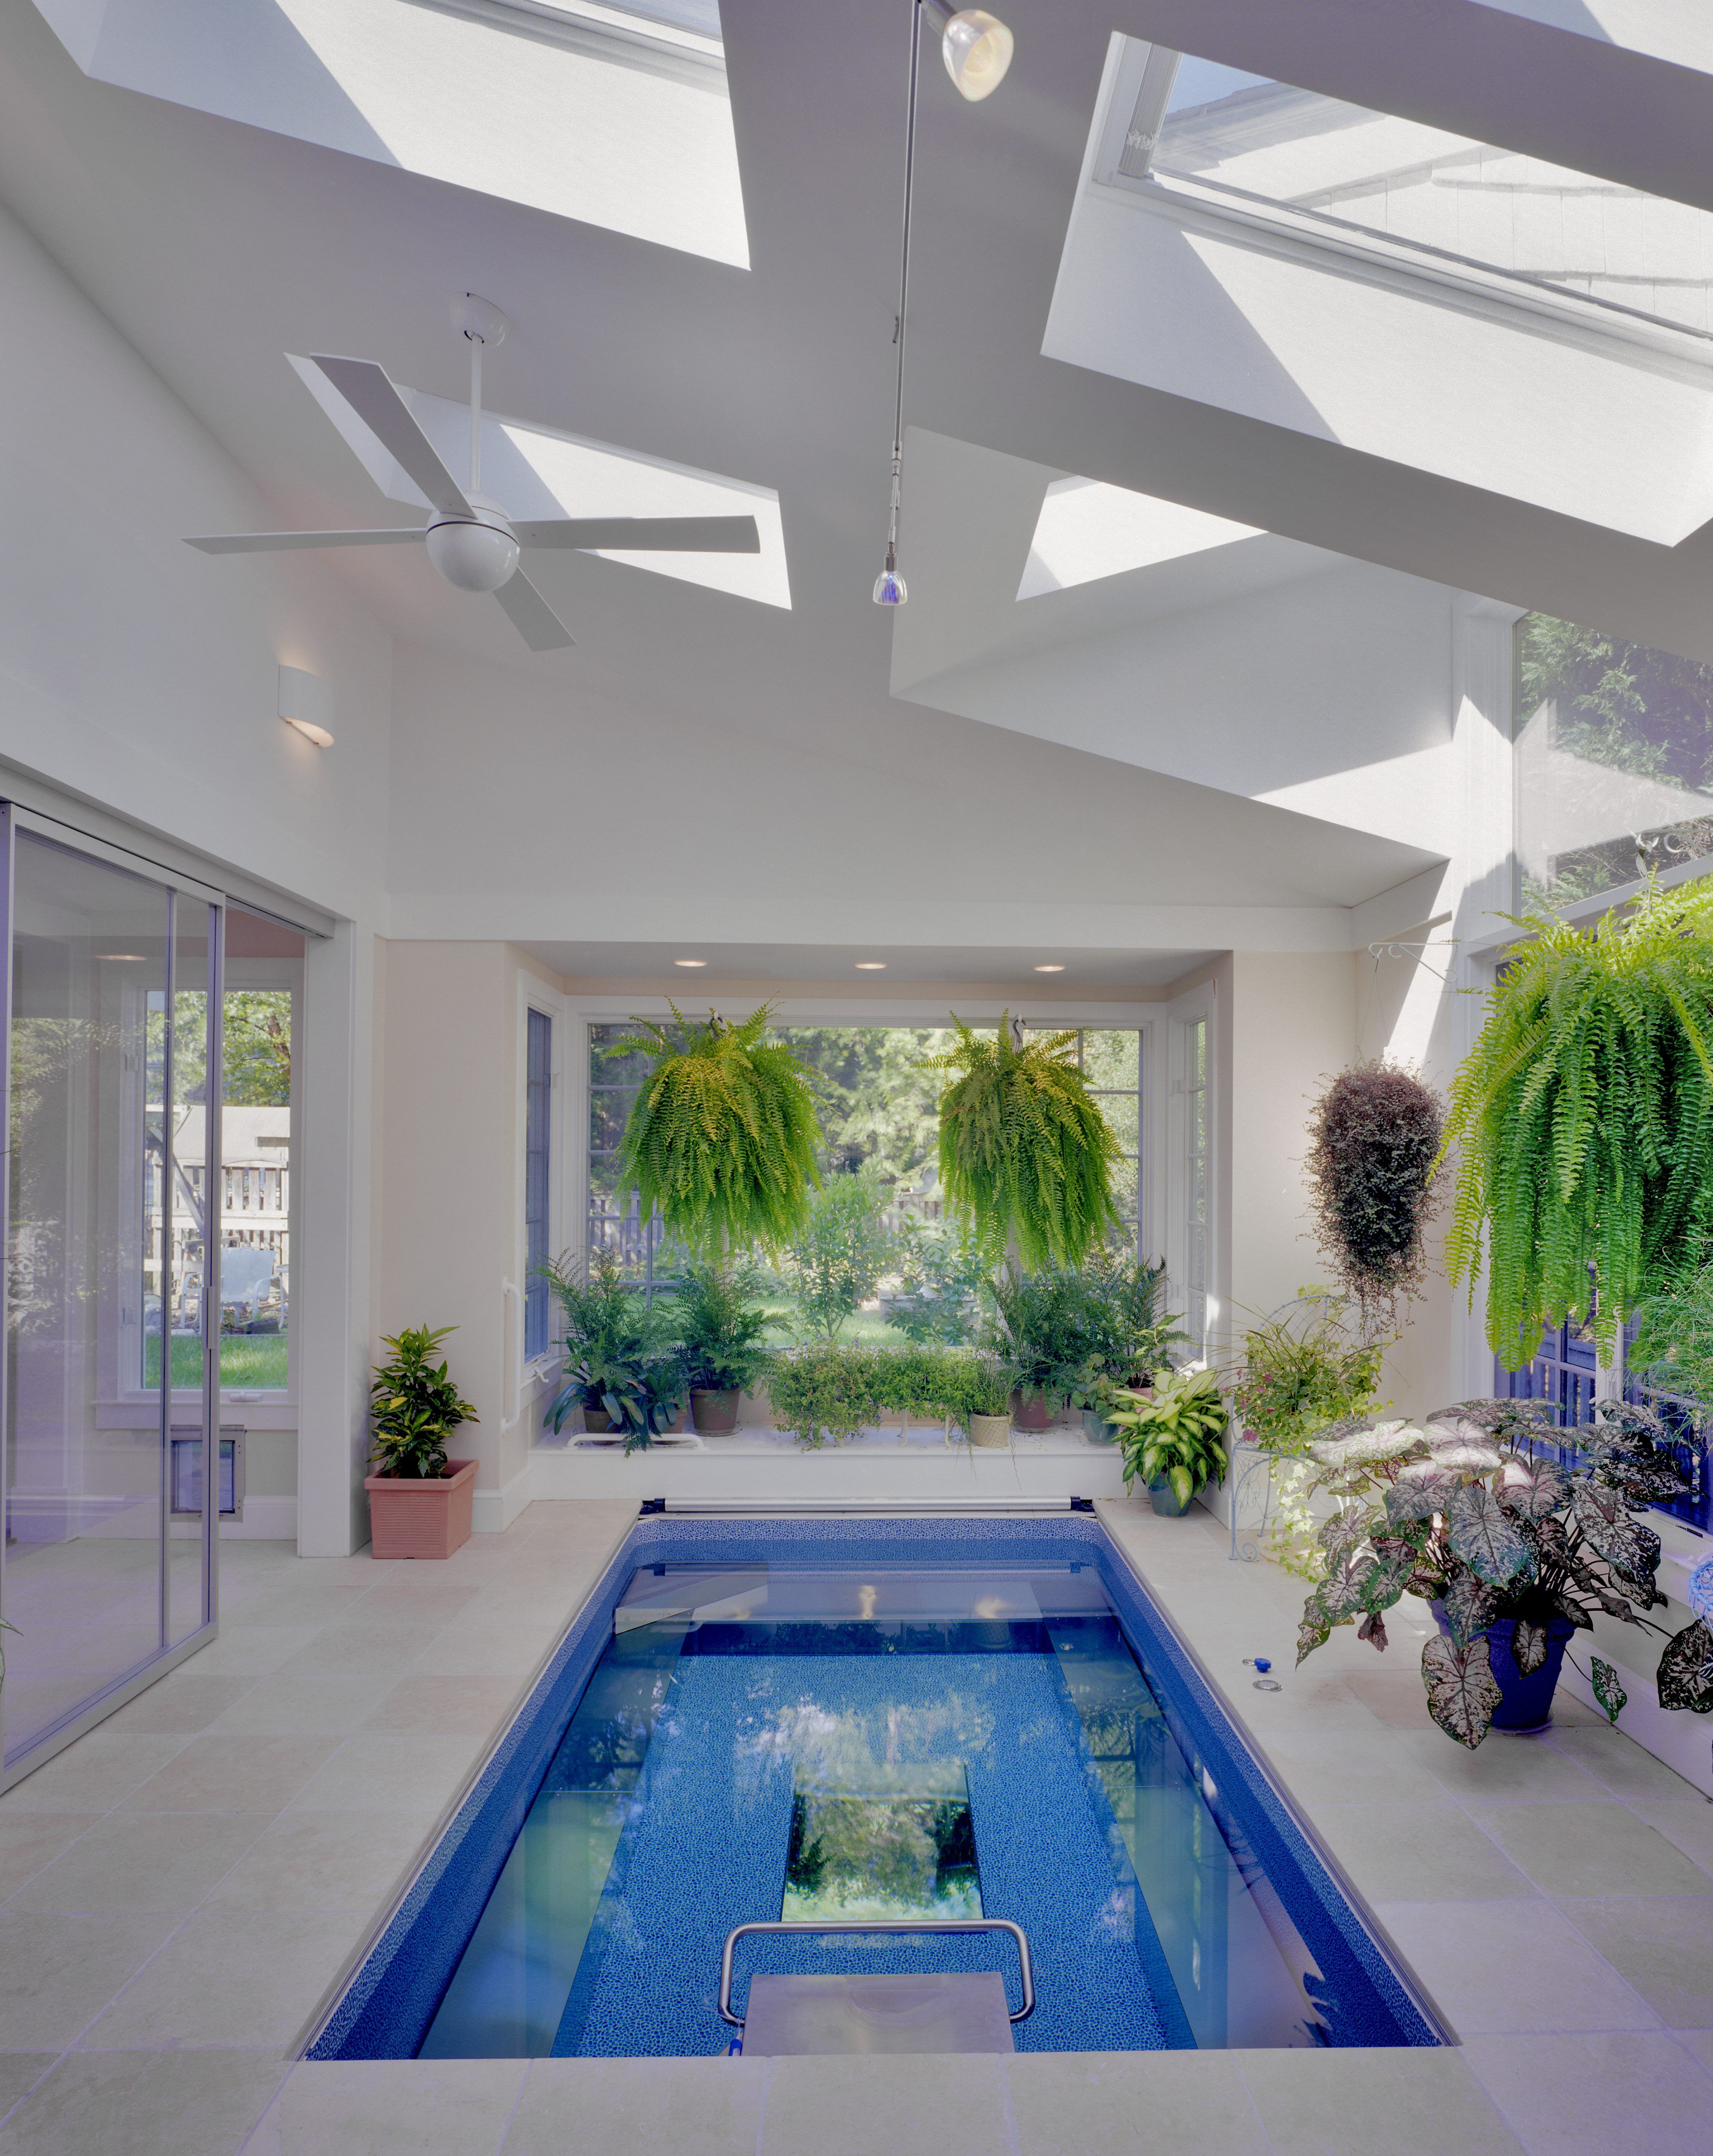 Jacksonville fl in addition fiberglass pools jacksonville fl on home - Indoor Endless Pool Swim Spa Workout Room With Gorgeous Overhead Custom Windows Endless Pools Swim Spas Pinterest Endless Pools Workout Rooms And